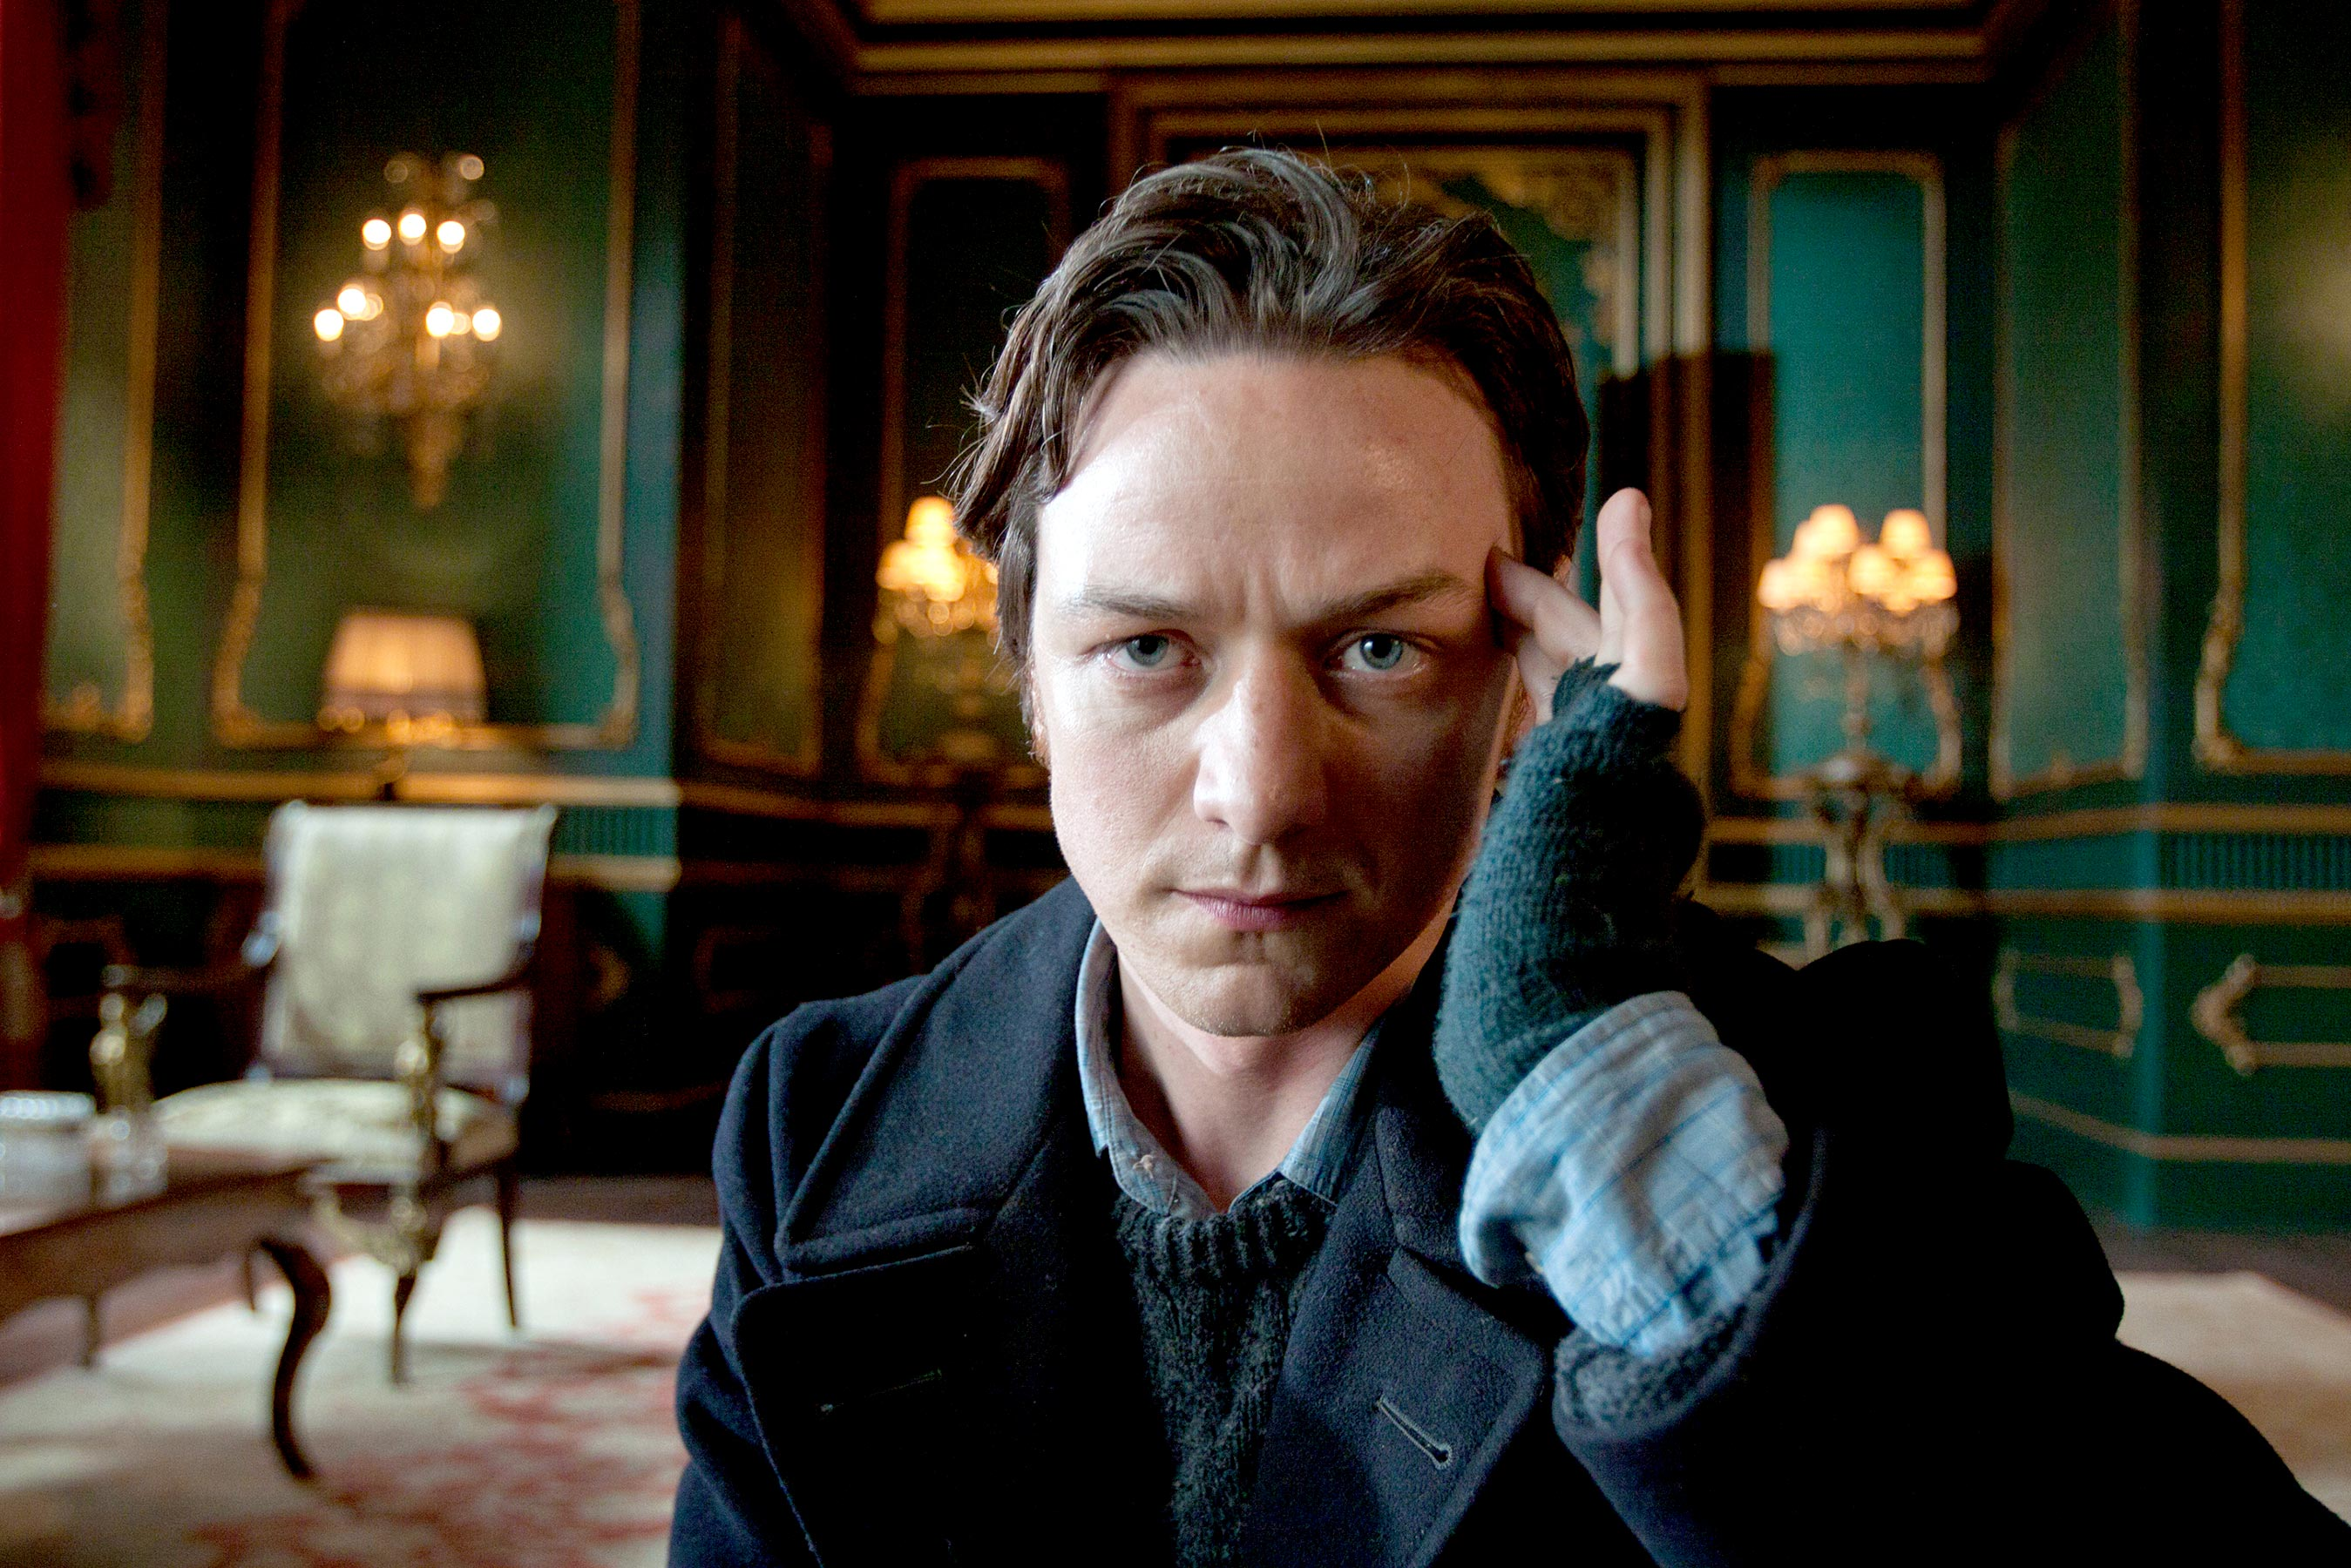 X-Men fans saw how it all began when James McAvoy assembled his team of merry mutants as professor Charles Xavier in 2011's X-Men: First Class , later appearing in 2014's X-Men: Days of Future Past .